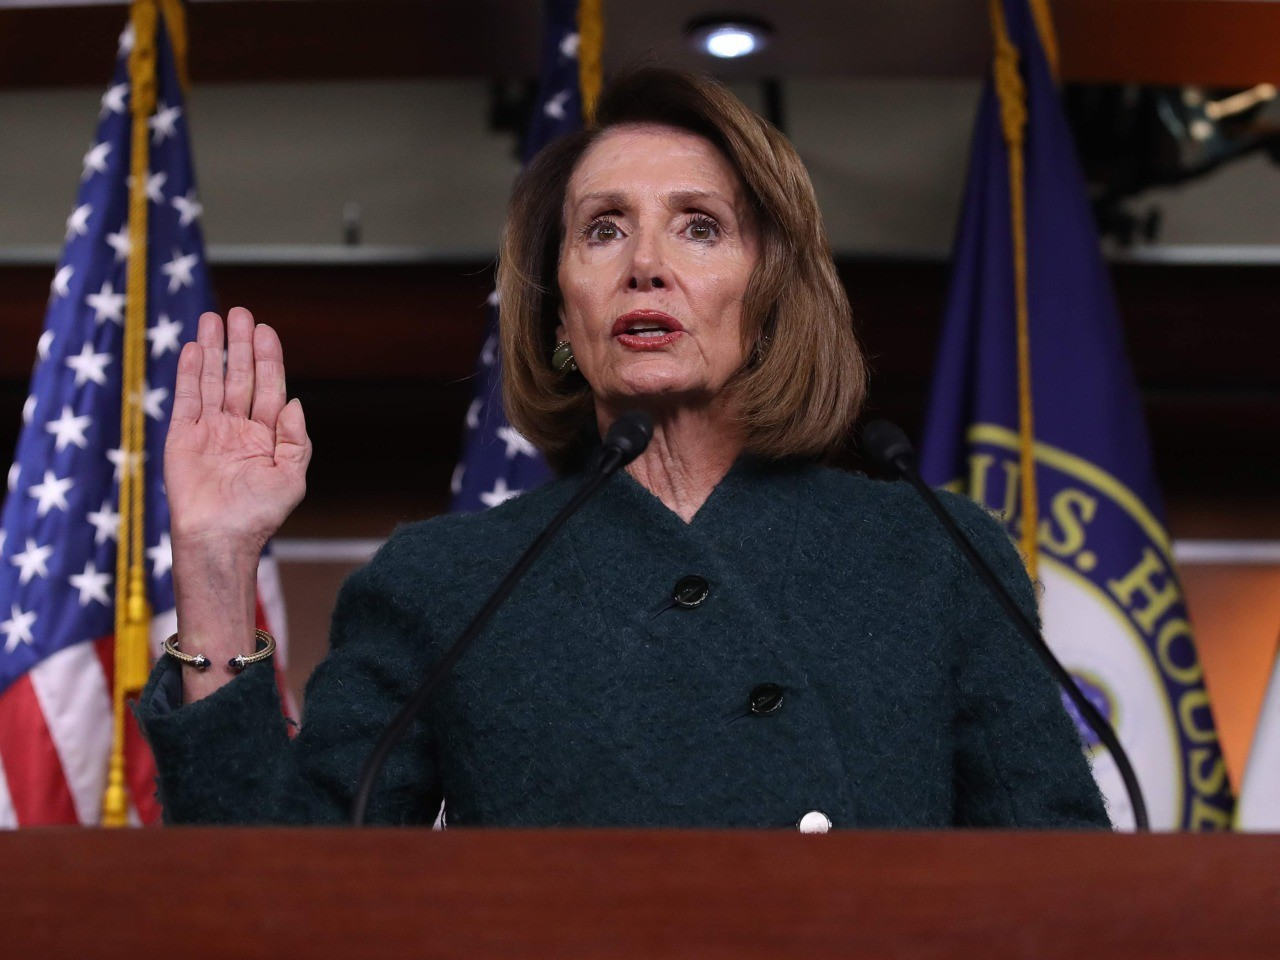 NBC, CNN: Secret Service, DHS Reject Nancy Pelosi's 'Security' Excuse for Canceling State of the Union | Breitbart